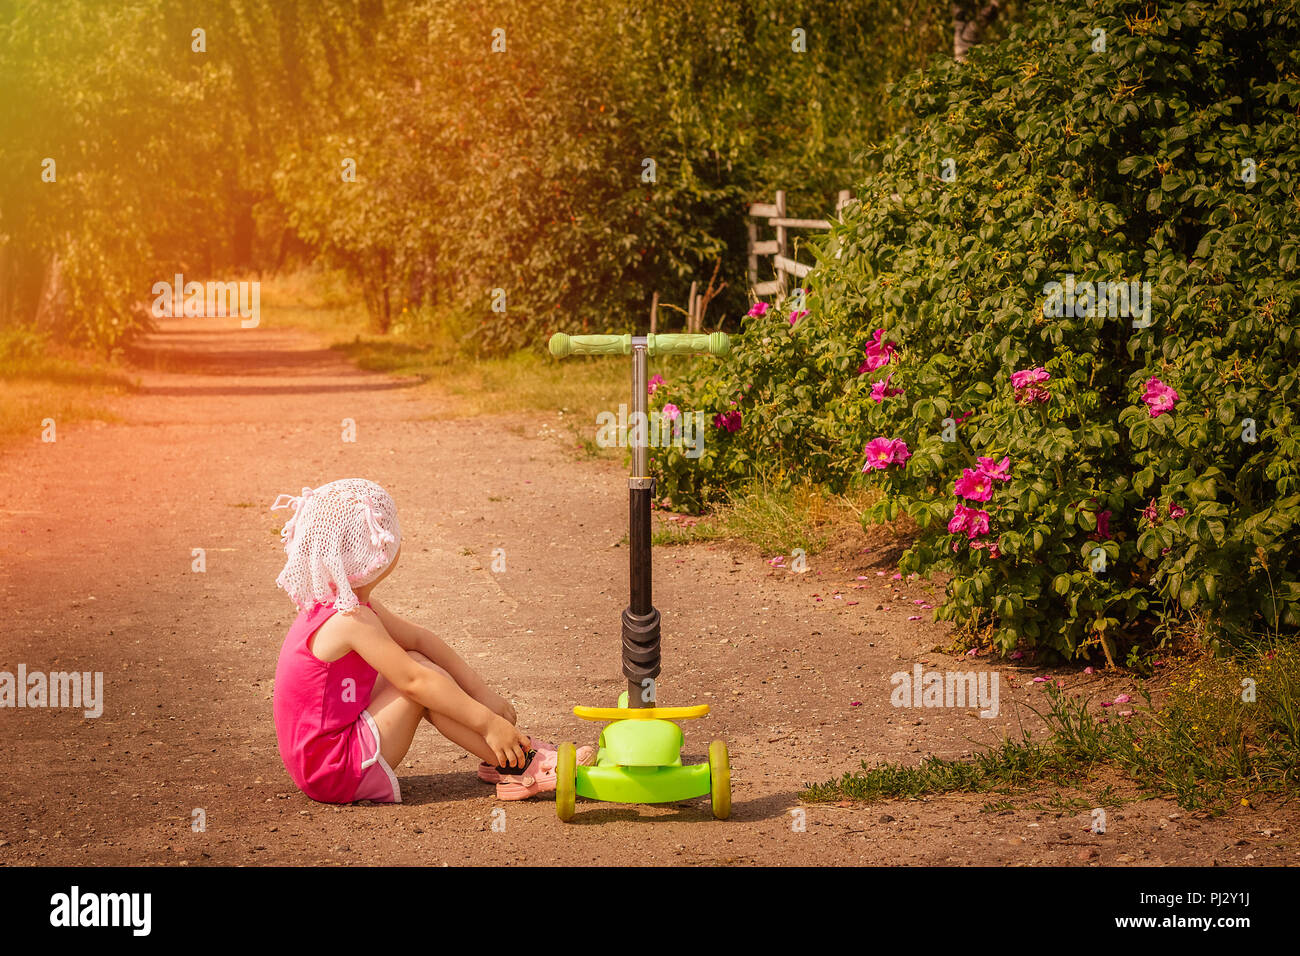 A little girl is sitting on the road next to a scooter in the countryside in the rays of a bright warm sun Stock Photo